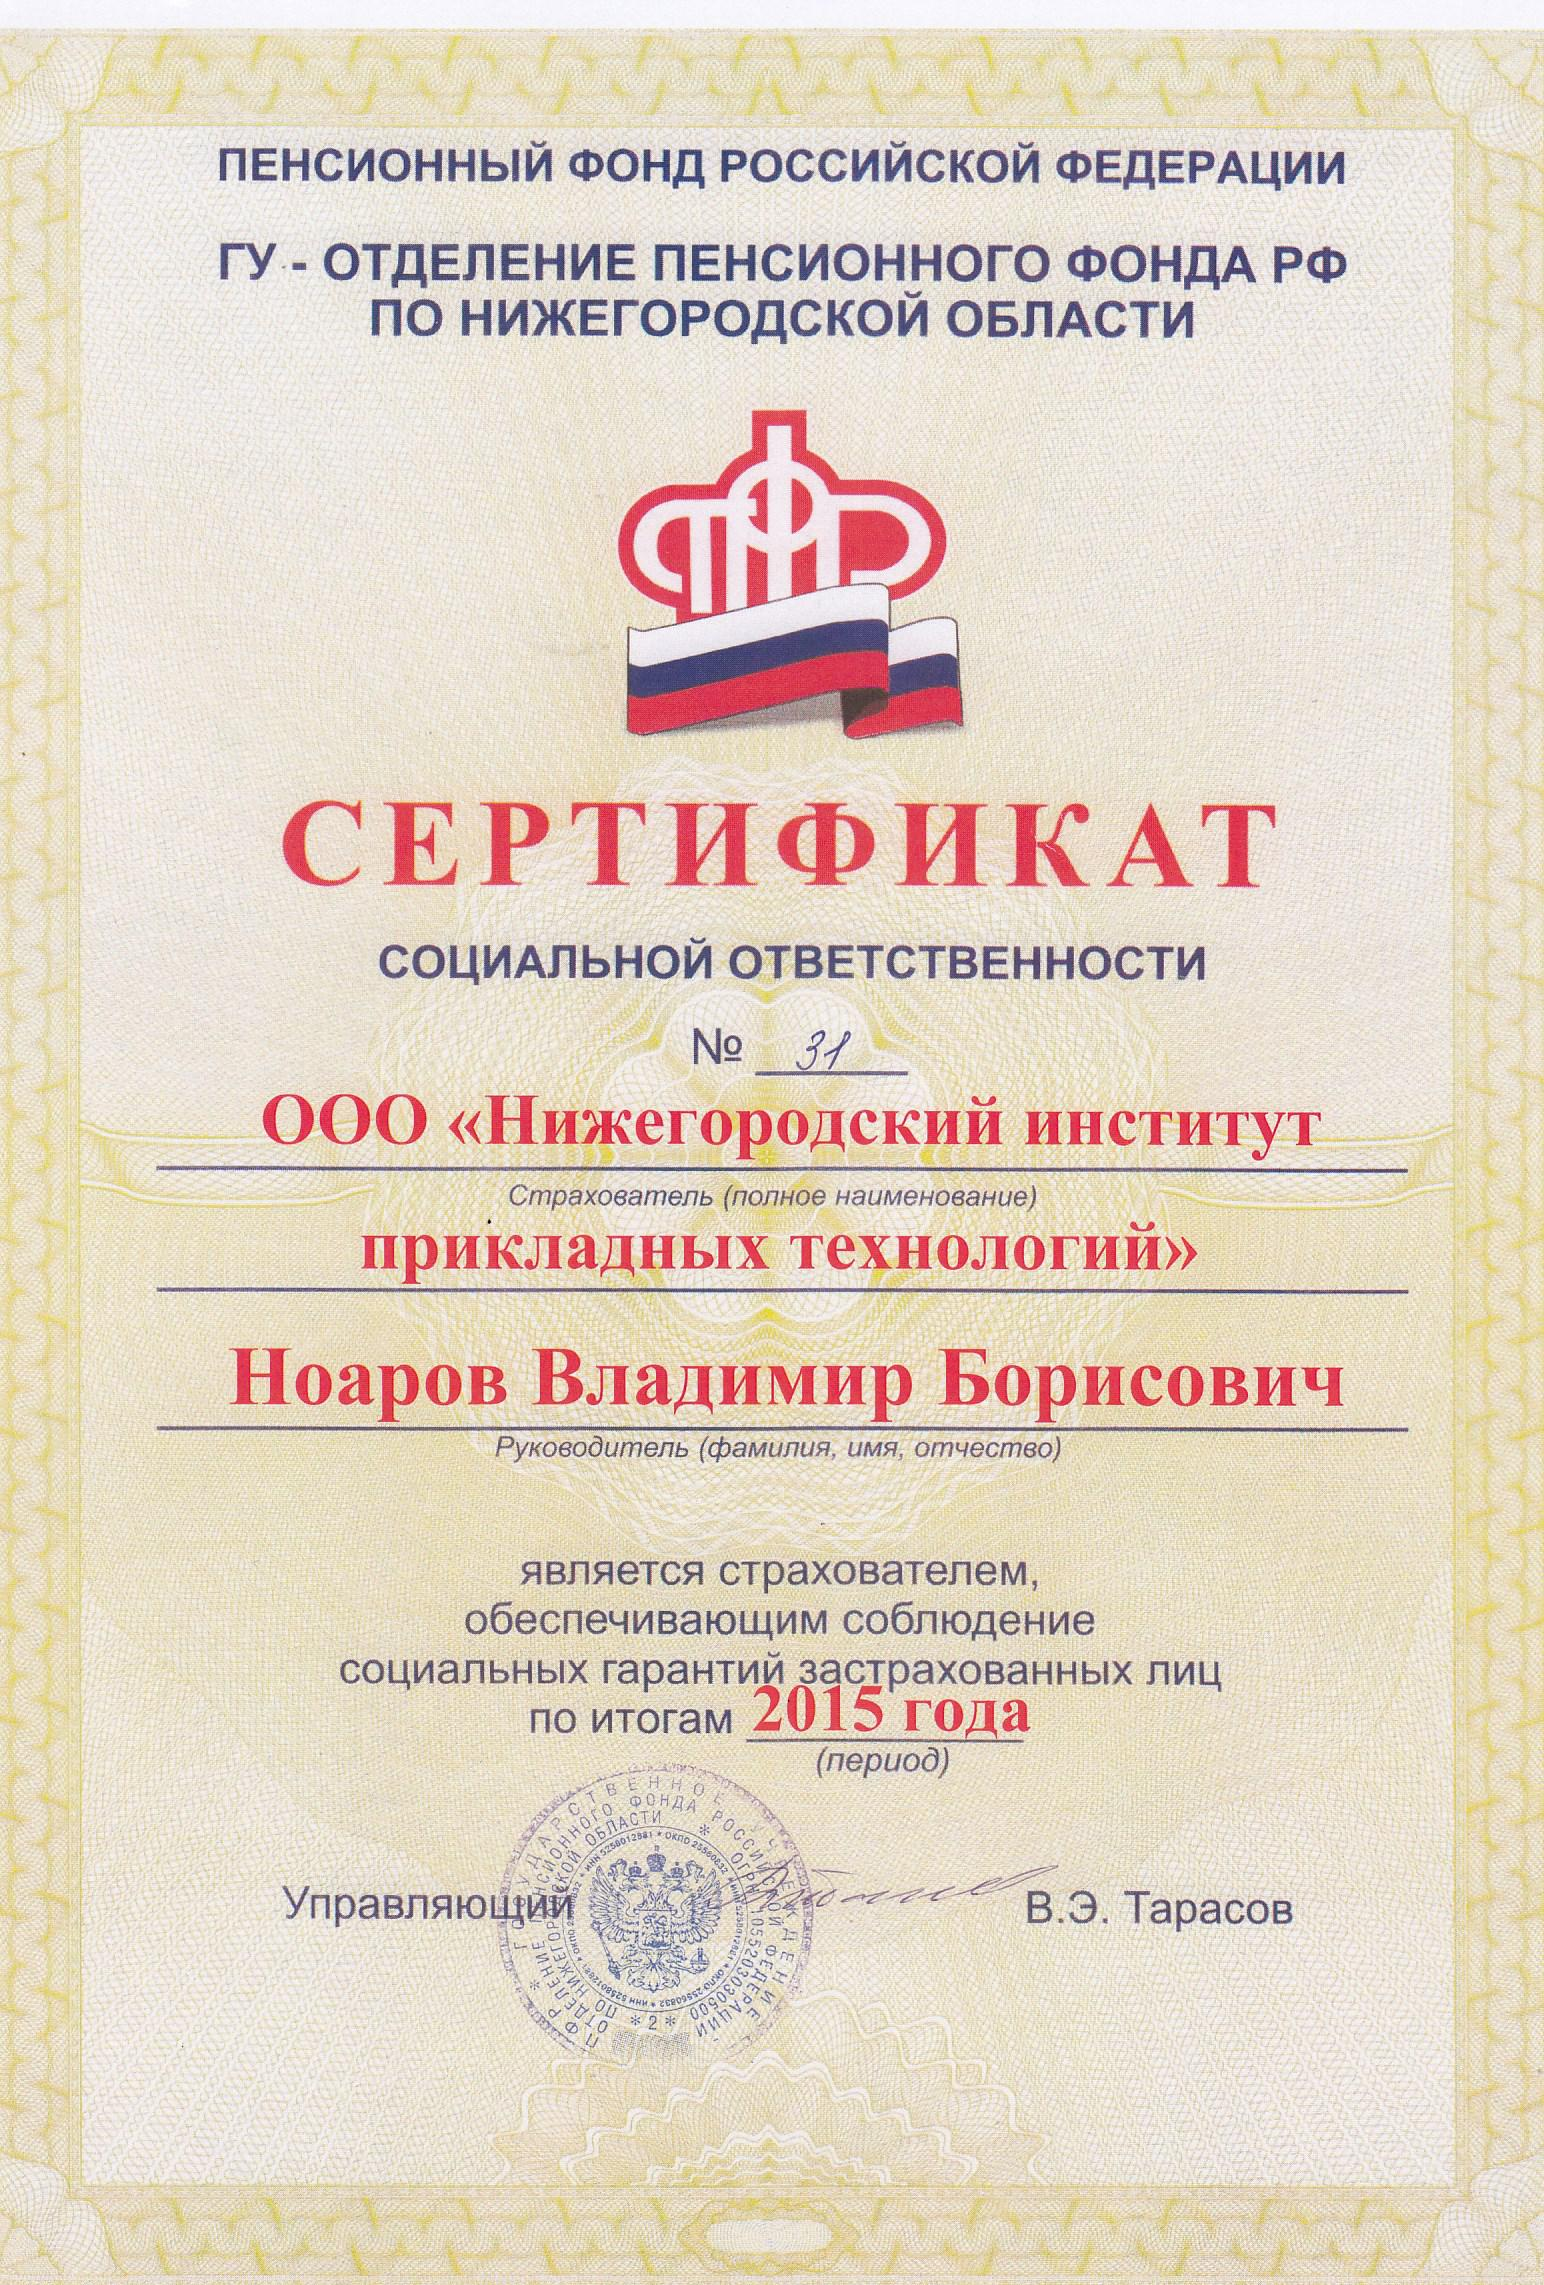 The company received social responsibility